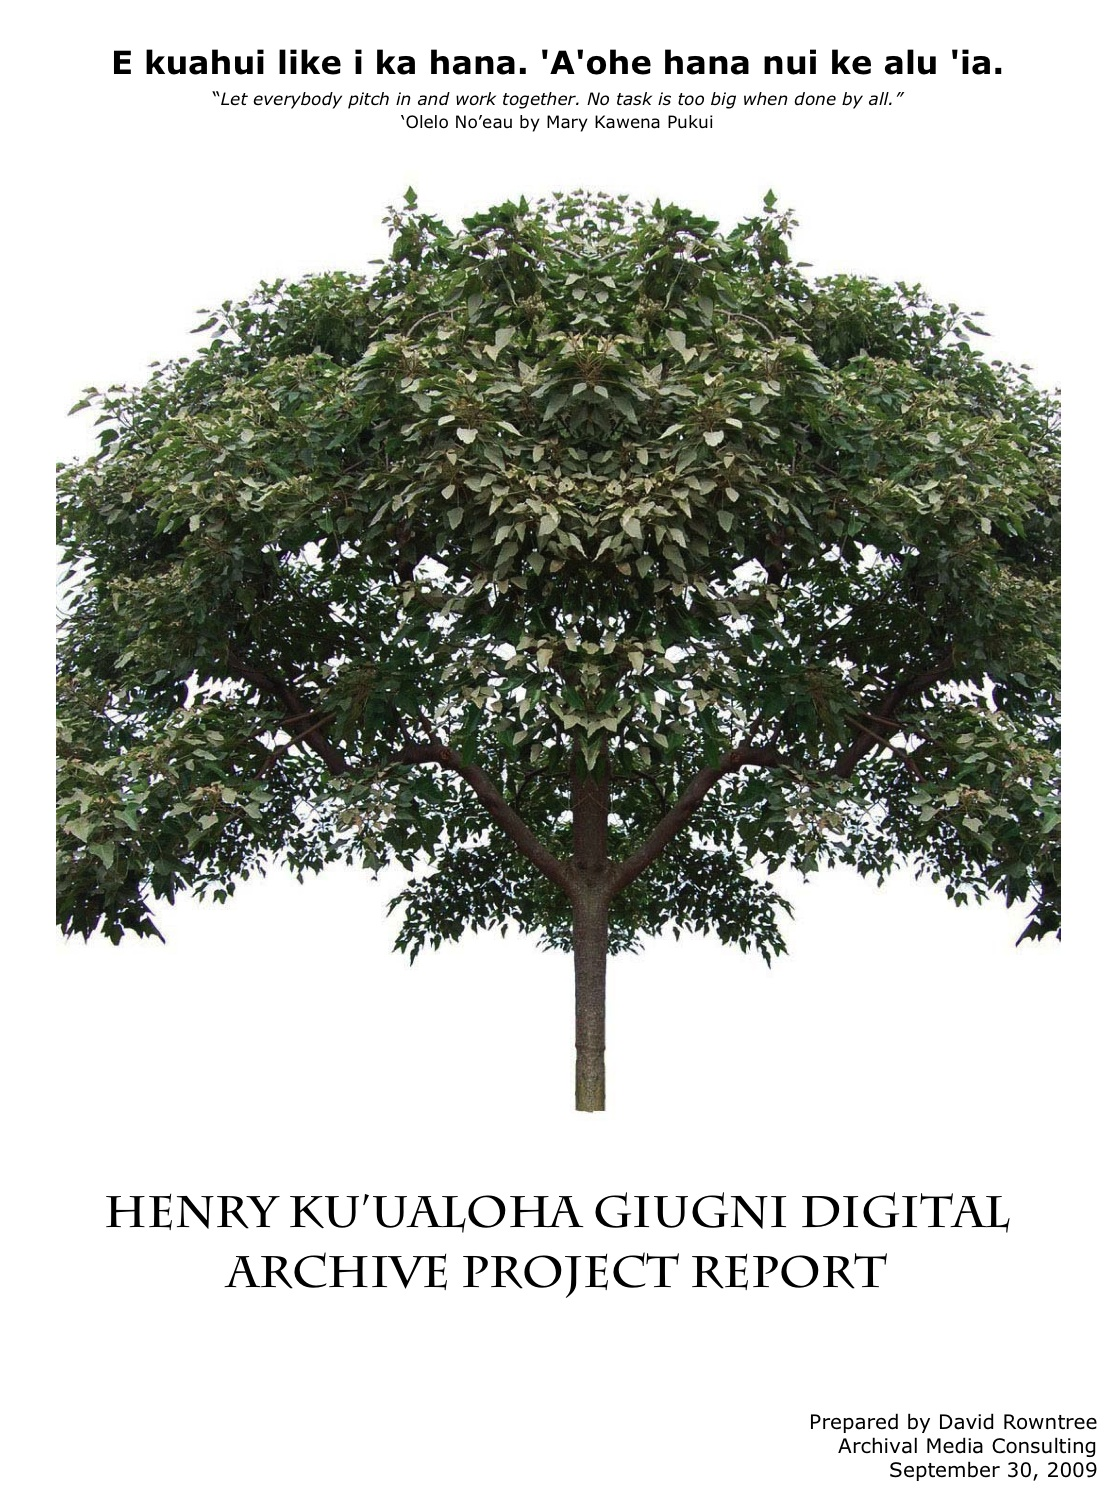 consultant s report 2009 ʻuluʻulu the henry kuʻualoha giugni consultant s report 2009 ʻuluʻulu the henry kuʻualoha giugni moving image archive of hawaiʻi